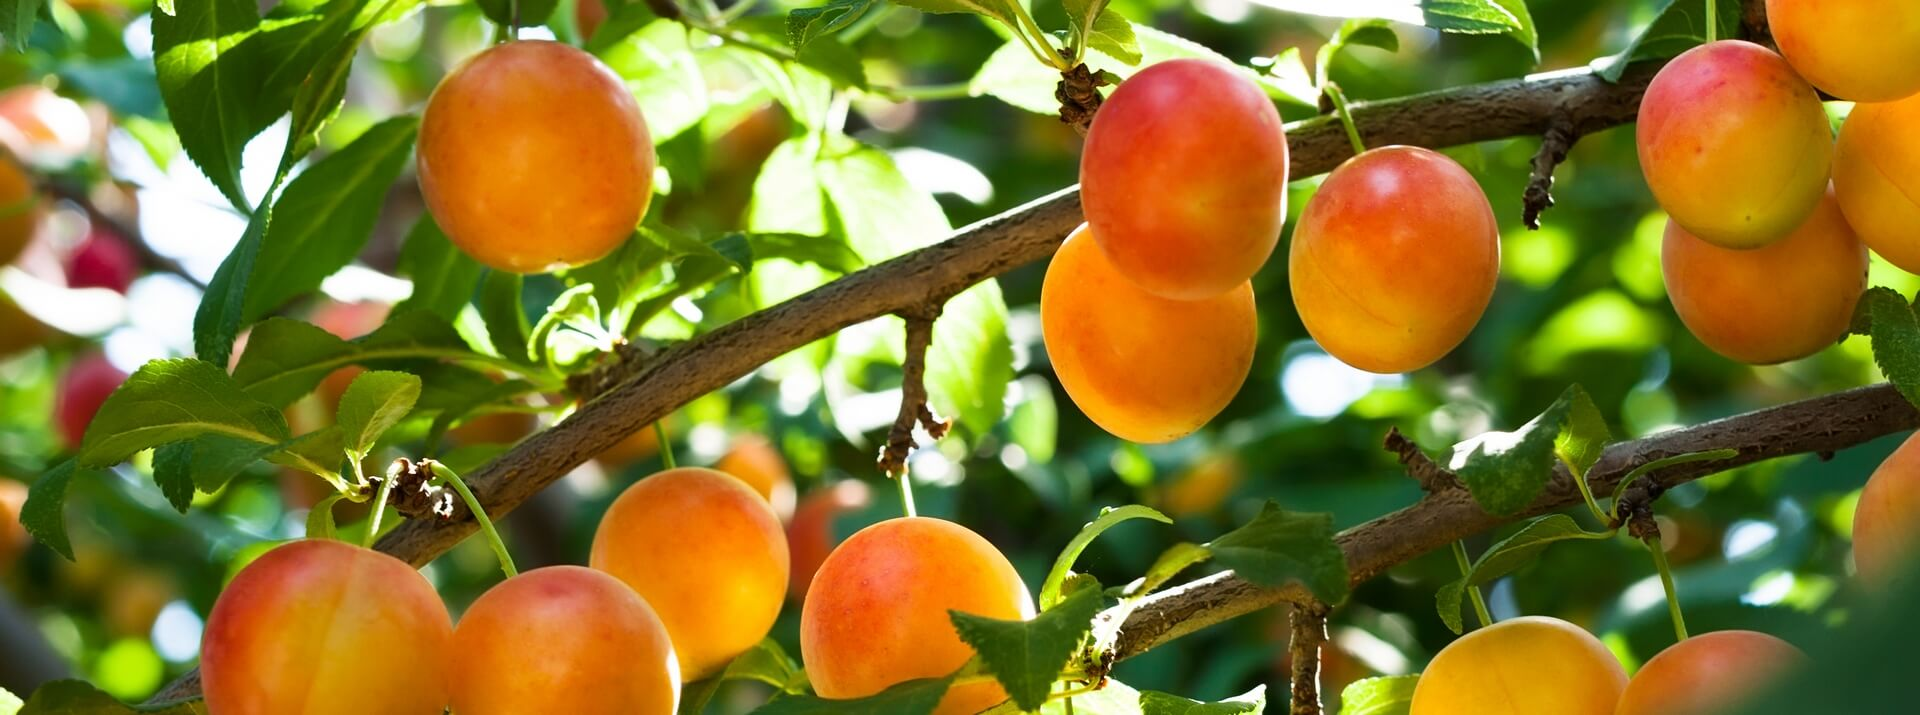 Fruitiers et fruitiers nains